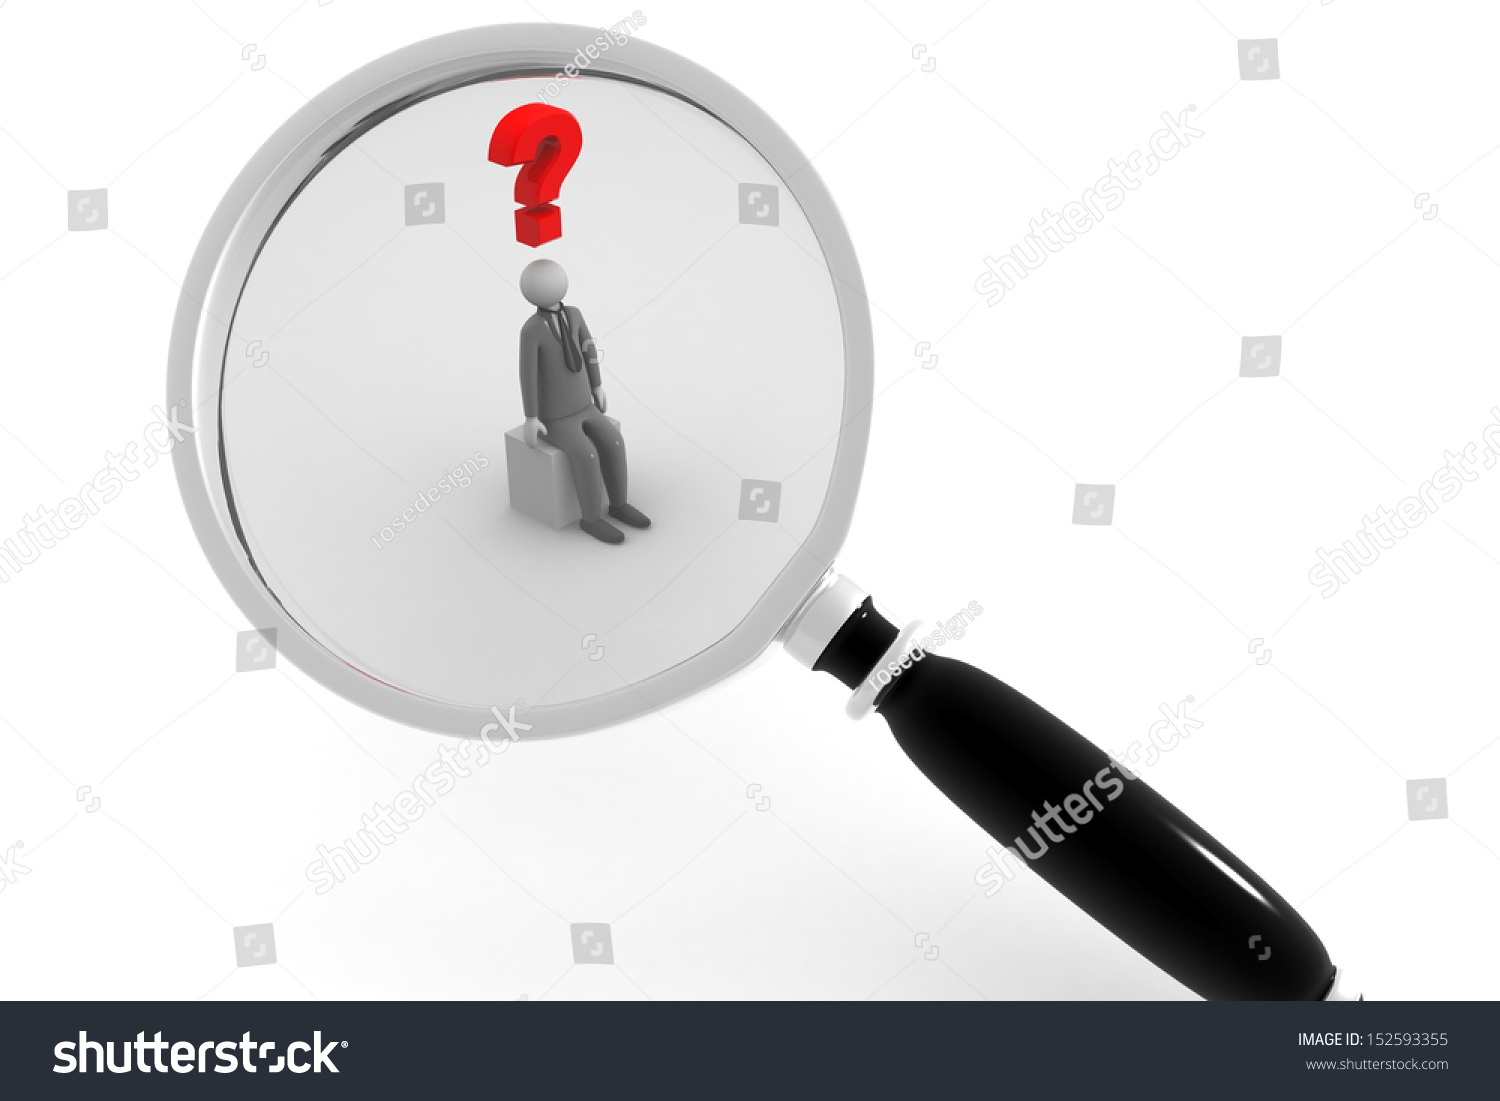 3d person with magnifying glass and question mark stock images image - Magnifying Glass Question Mark Red Search